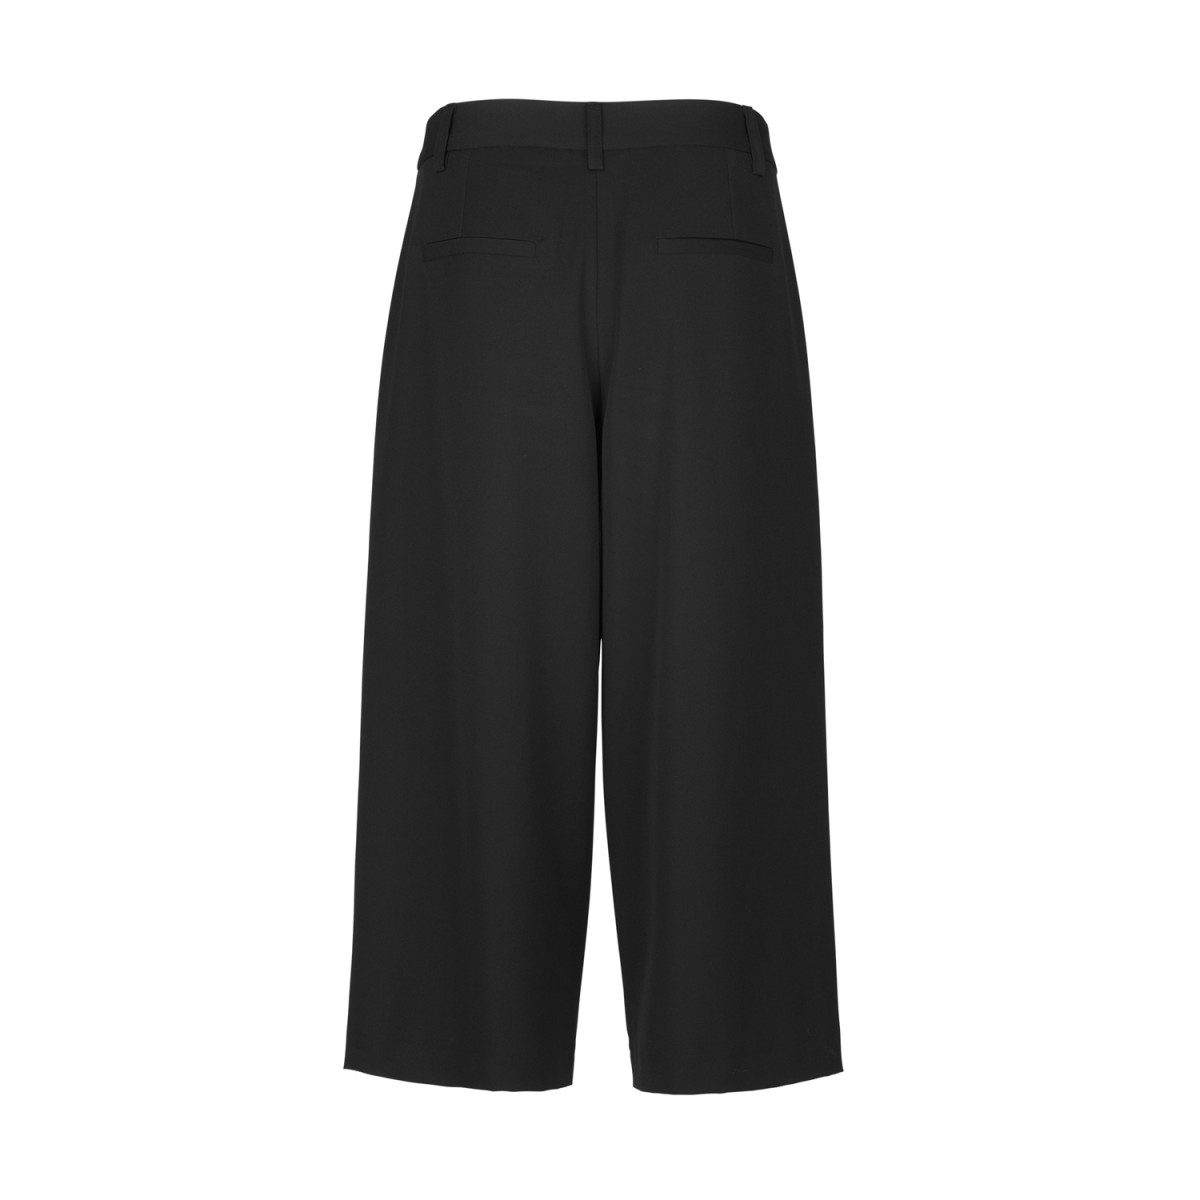 Rosemunde 6475-010 Trousers Black-35